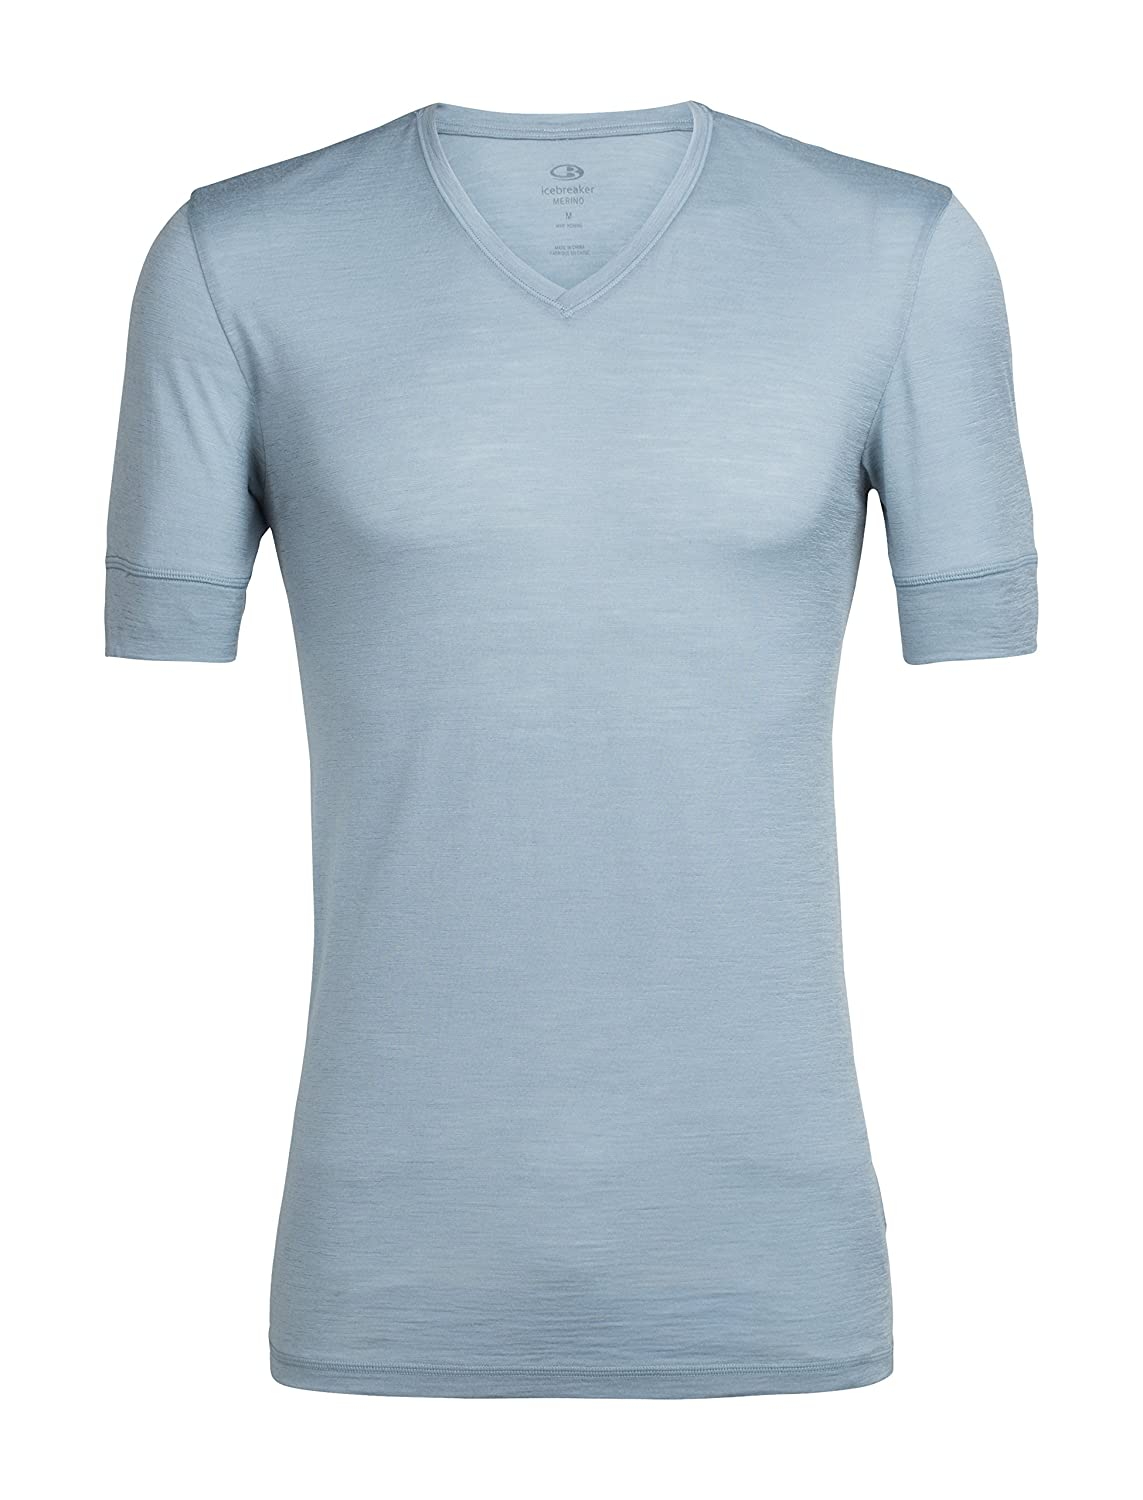 ed5ac0e925 Amazon.com: Icebreaker Merino Men's City Lite Short Sleeve V-Neck Shirt,  Merino Wool: Sports & Outdoors